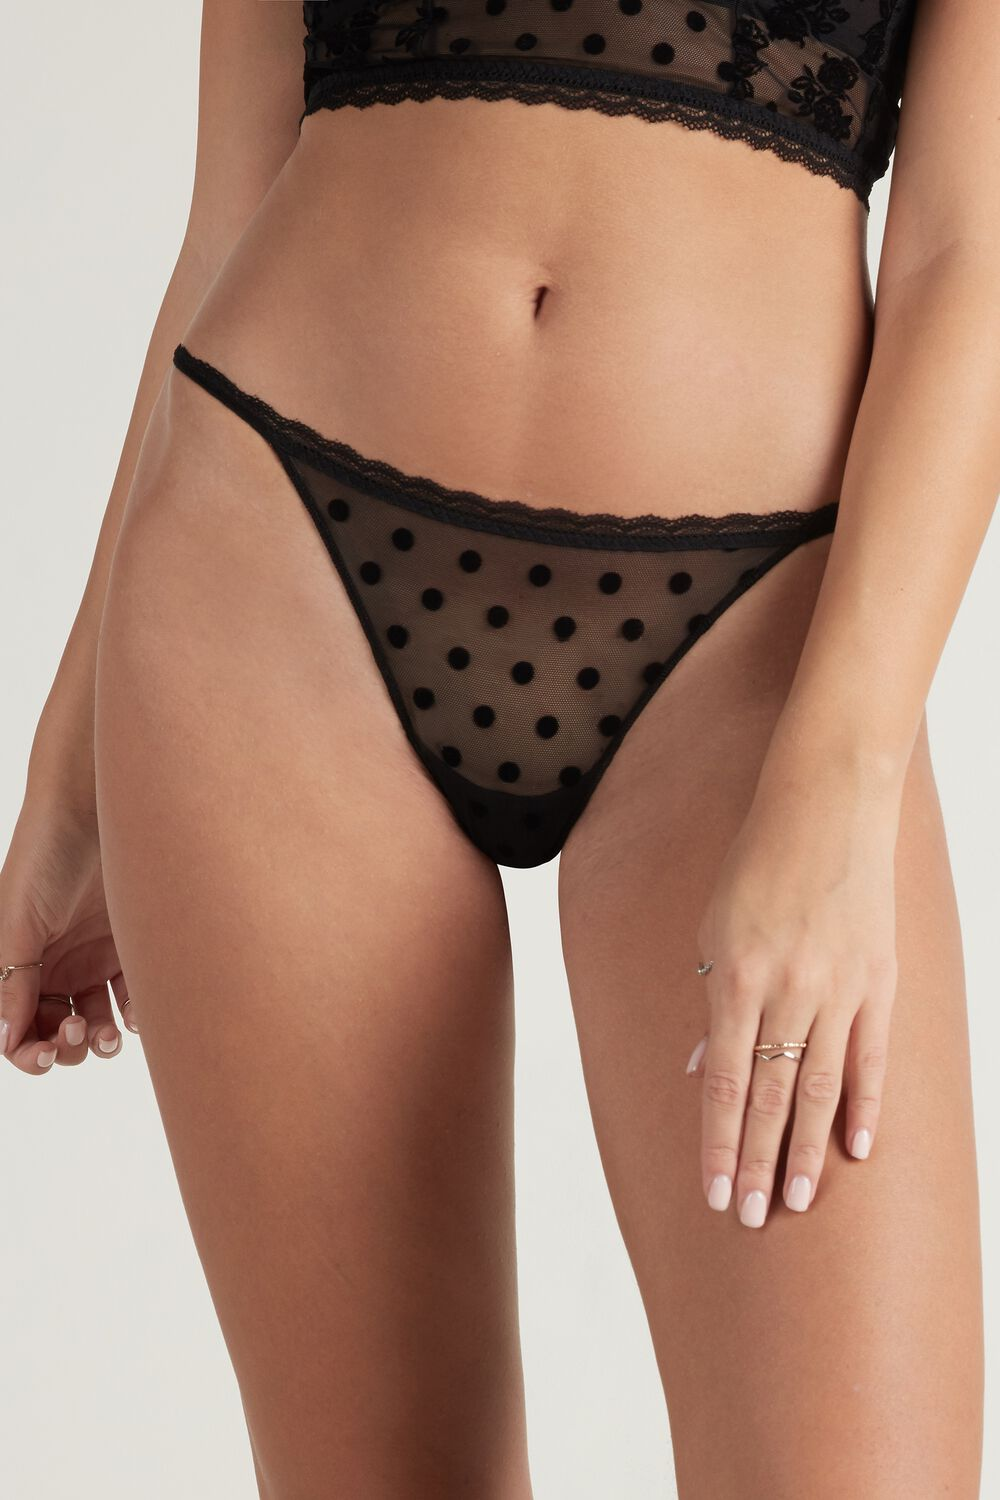 Mix Flock Flocked Tulle G-string